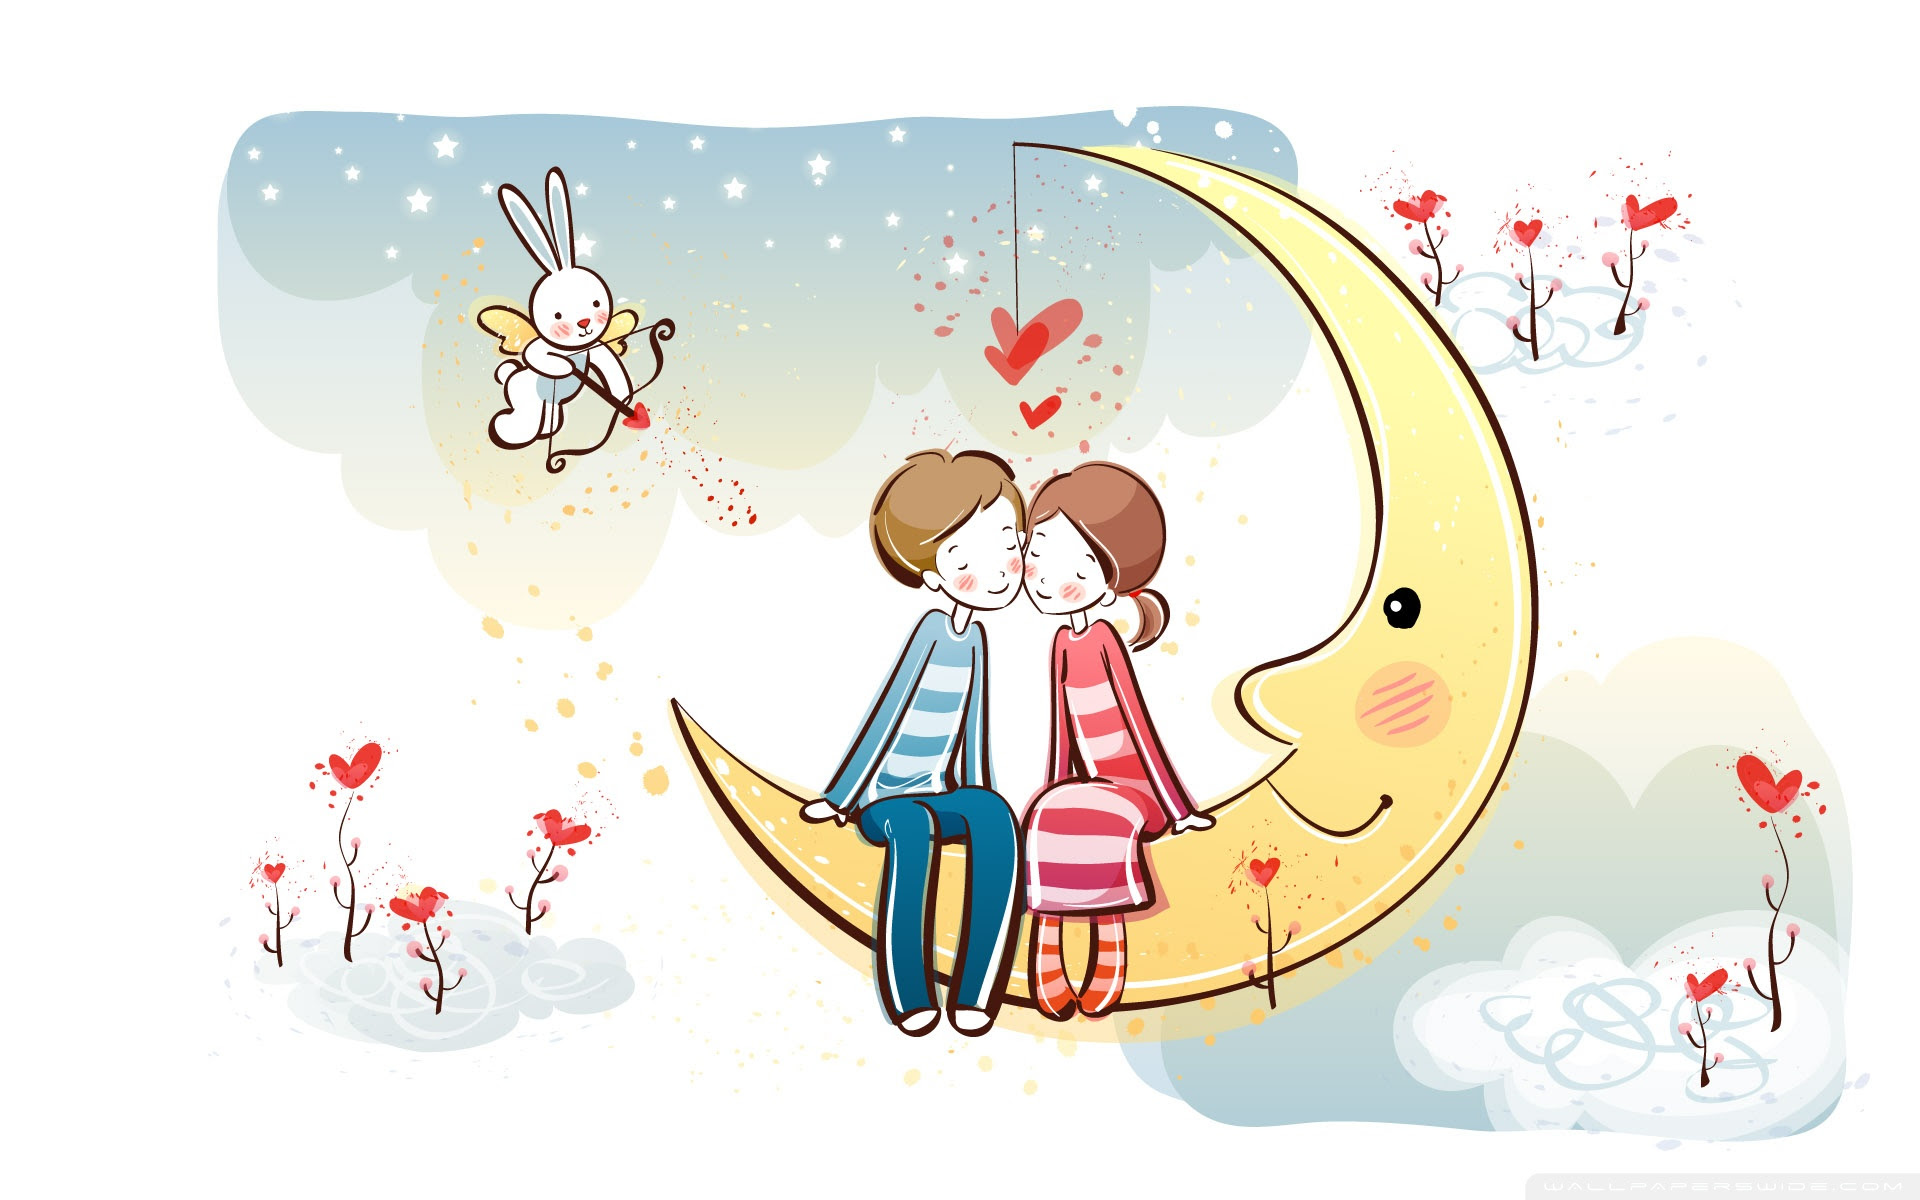 Sweet Couple On Moon 4k Hd Desktop Wallpaper For 4k Ultra Hd Tv Tablet Smartphone Mobile